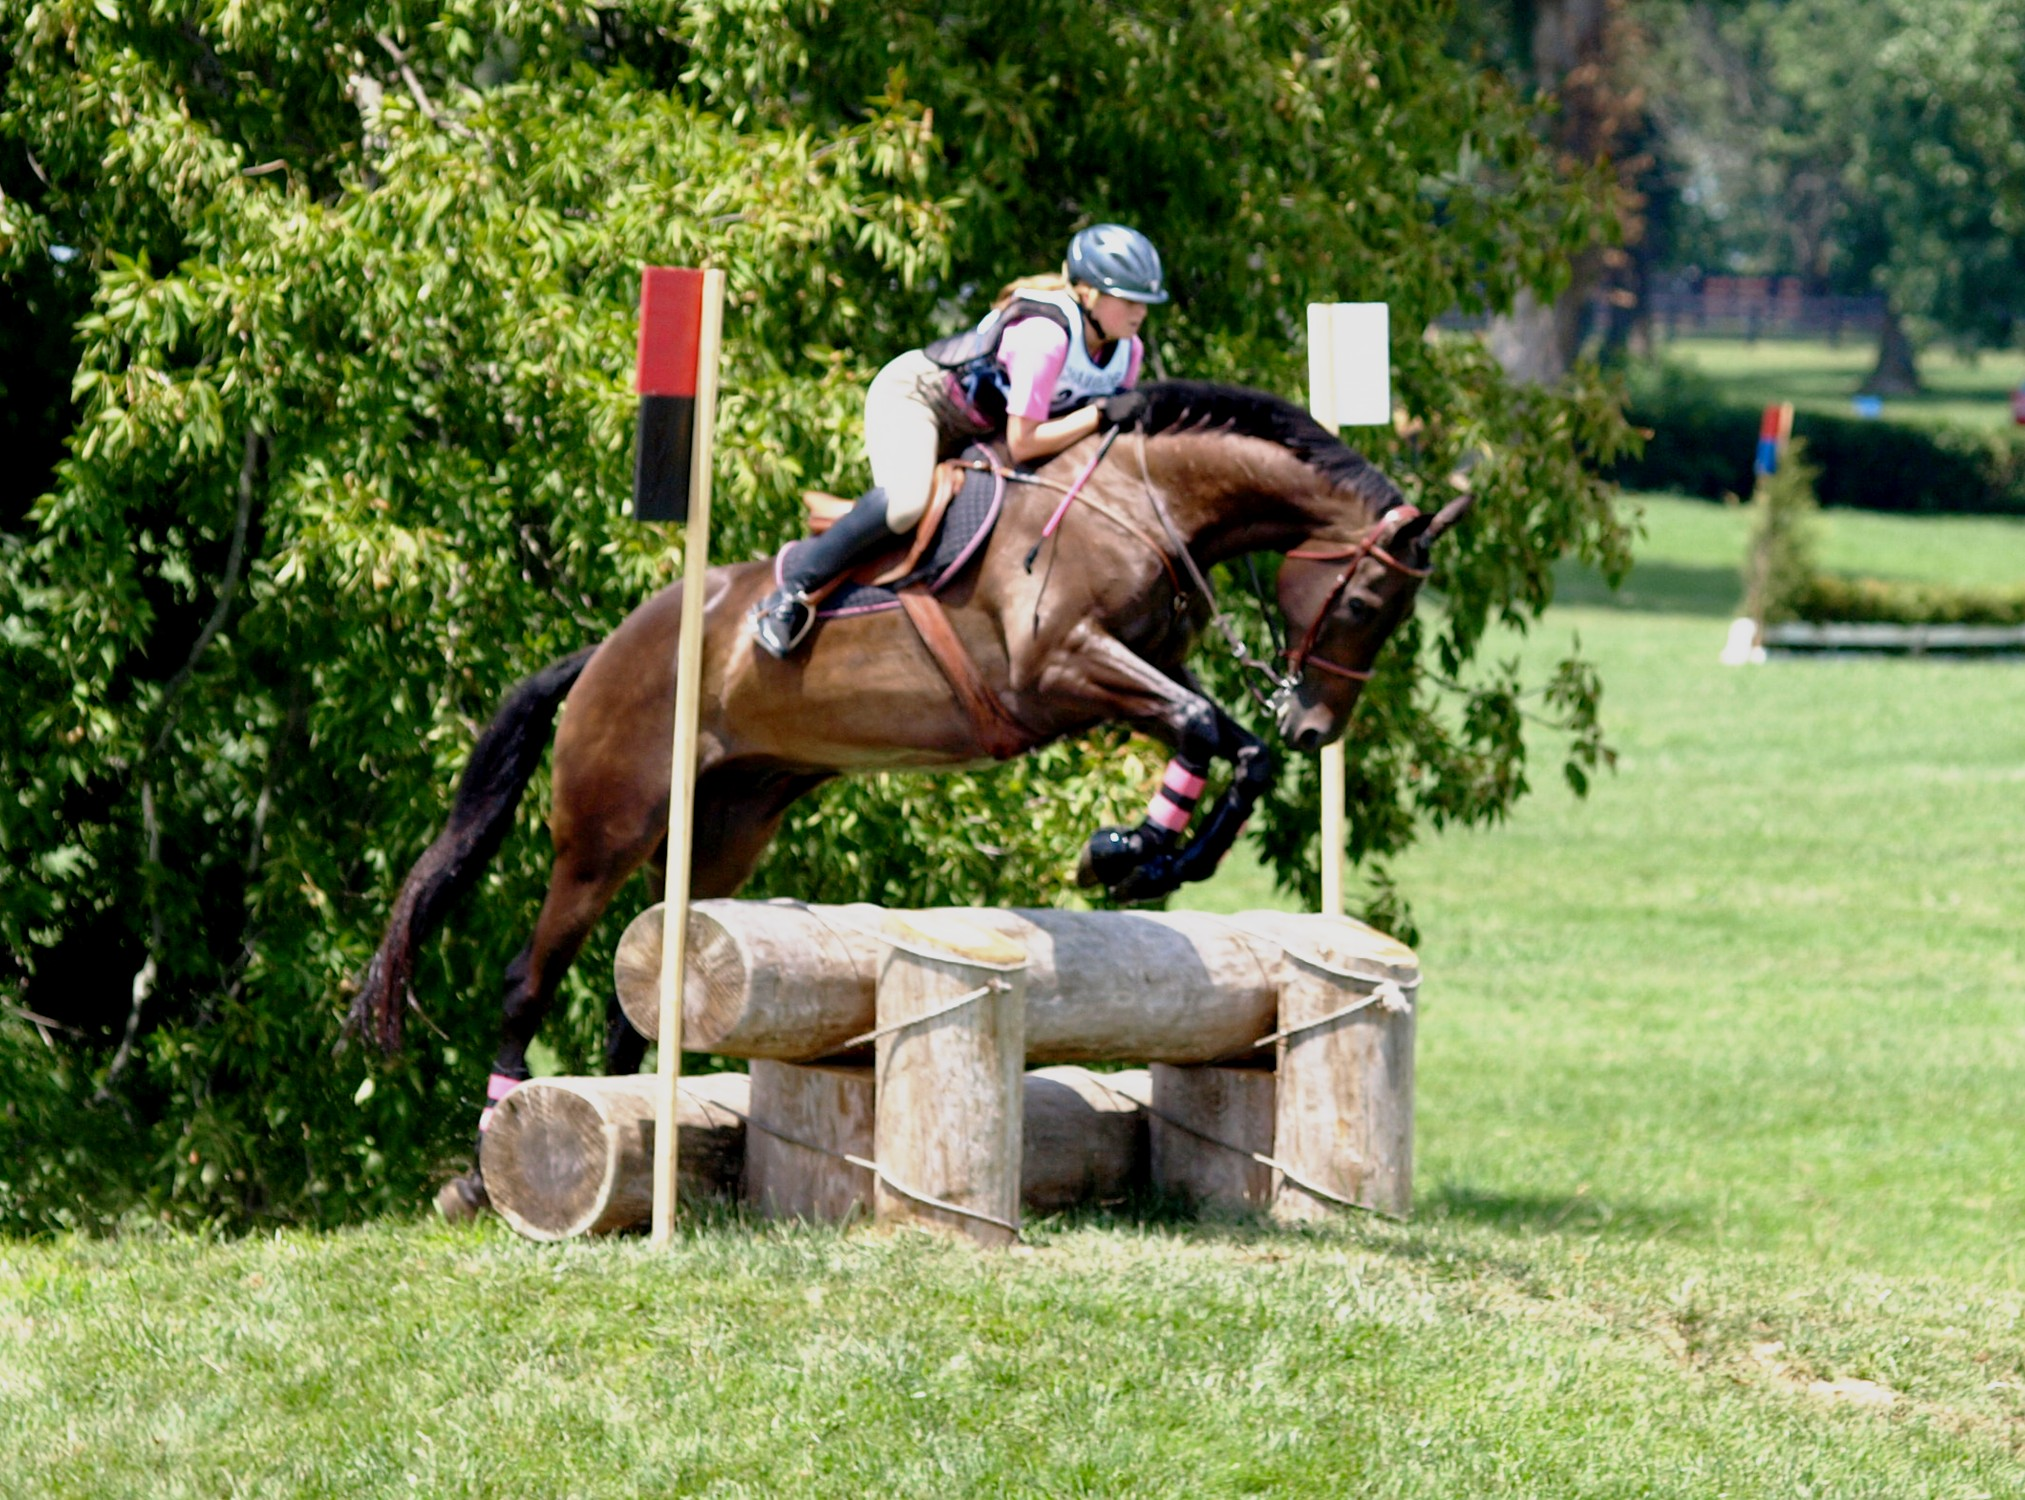 Horses jumping cross country - photo#1